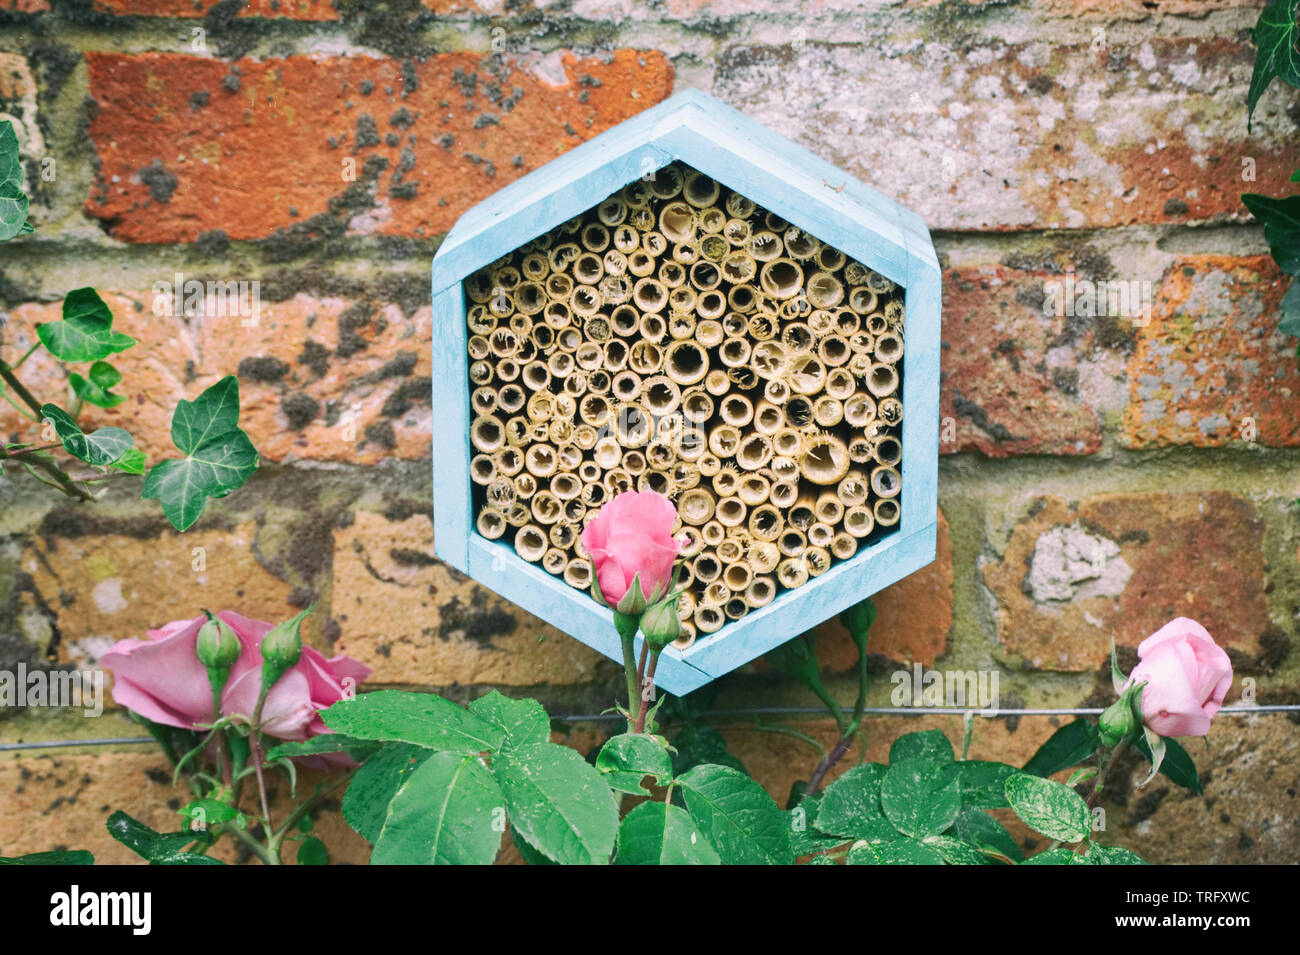 A bee house amongst the roses to encourage beneficial insects into the garden. - Stock Image